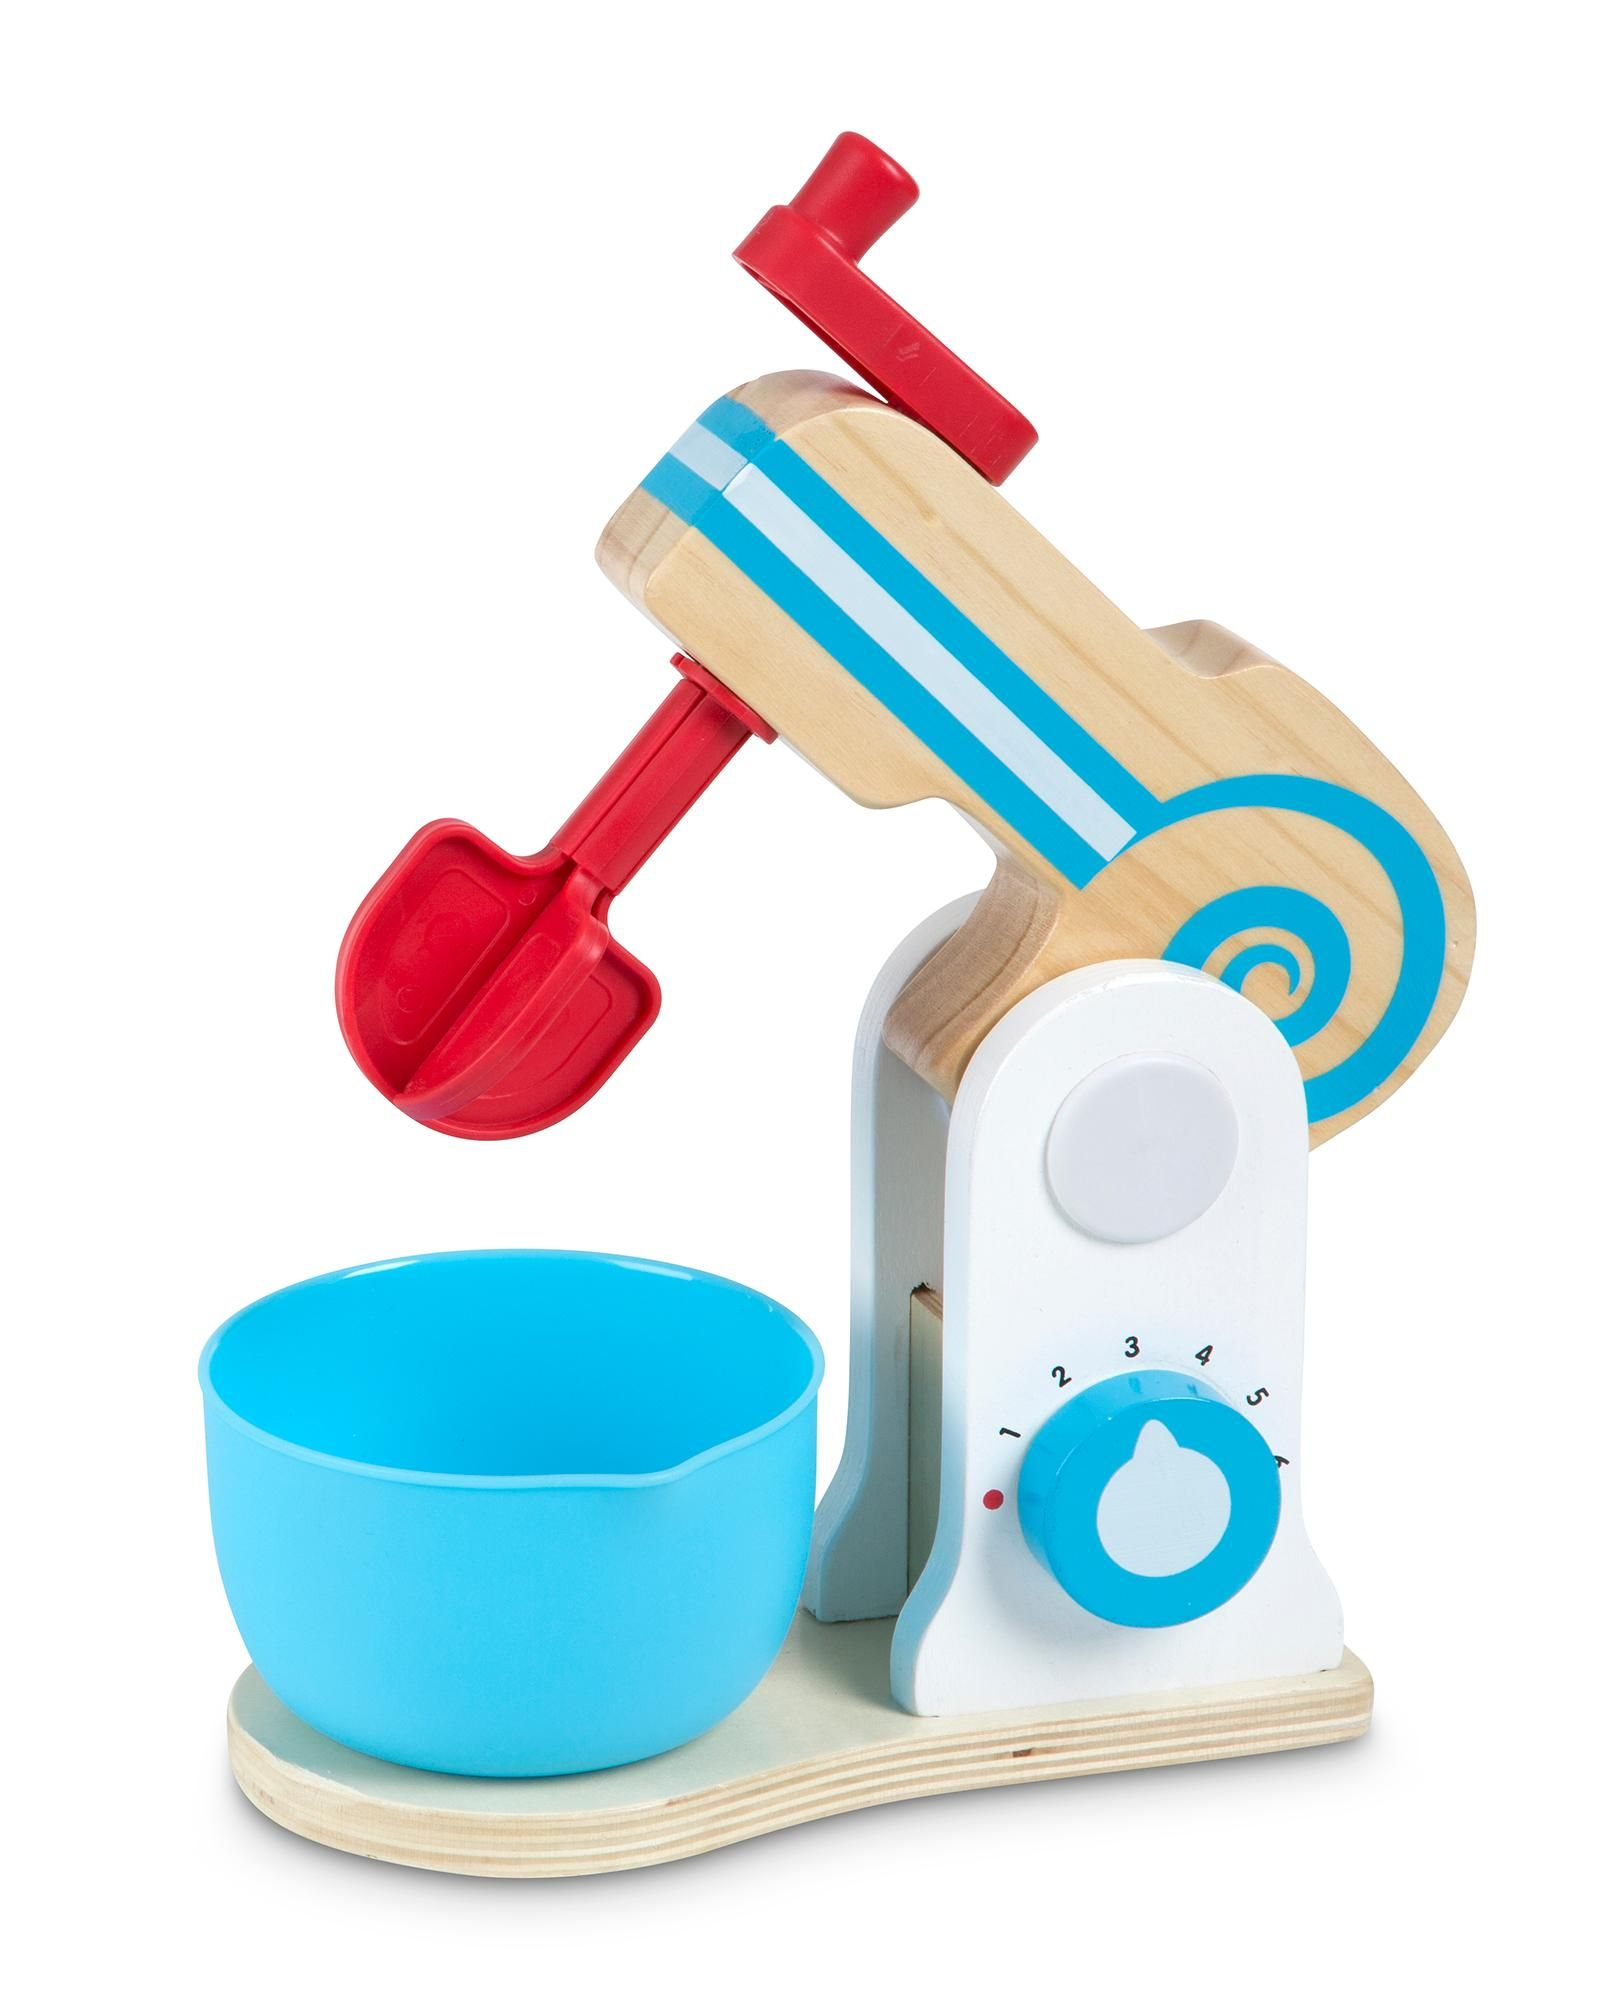 play;kitchen;food;baking;oven;toy;for 3 year old;boy;girl;preschool ...